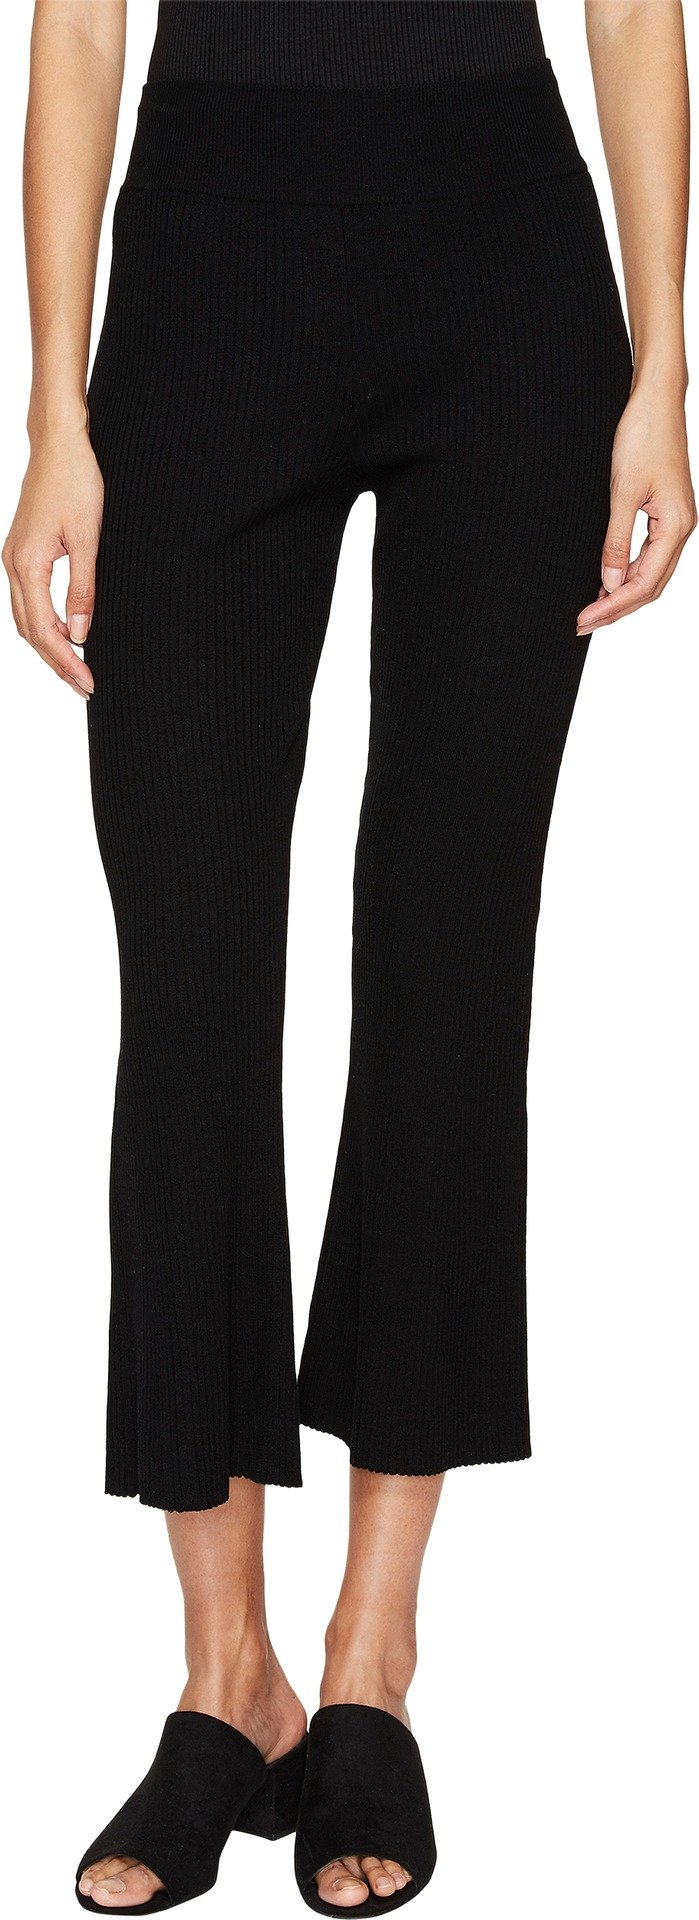 Cashmere In Love Women's Candiss Ribbed Knit Pants Black Large